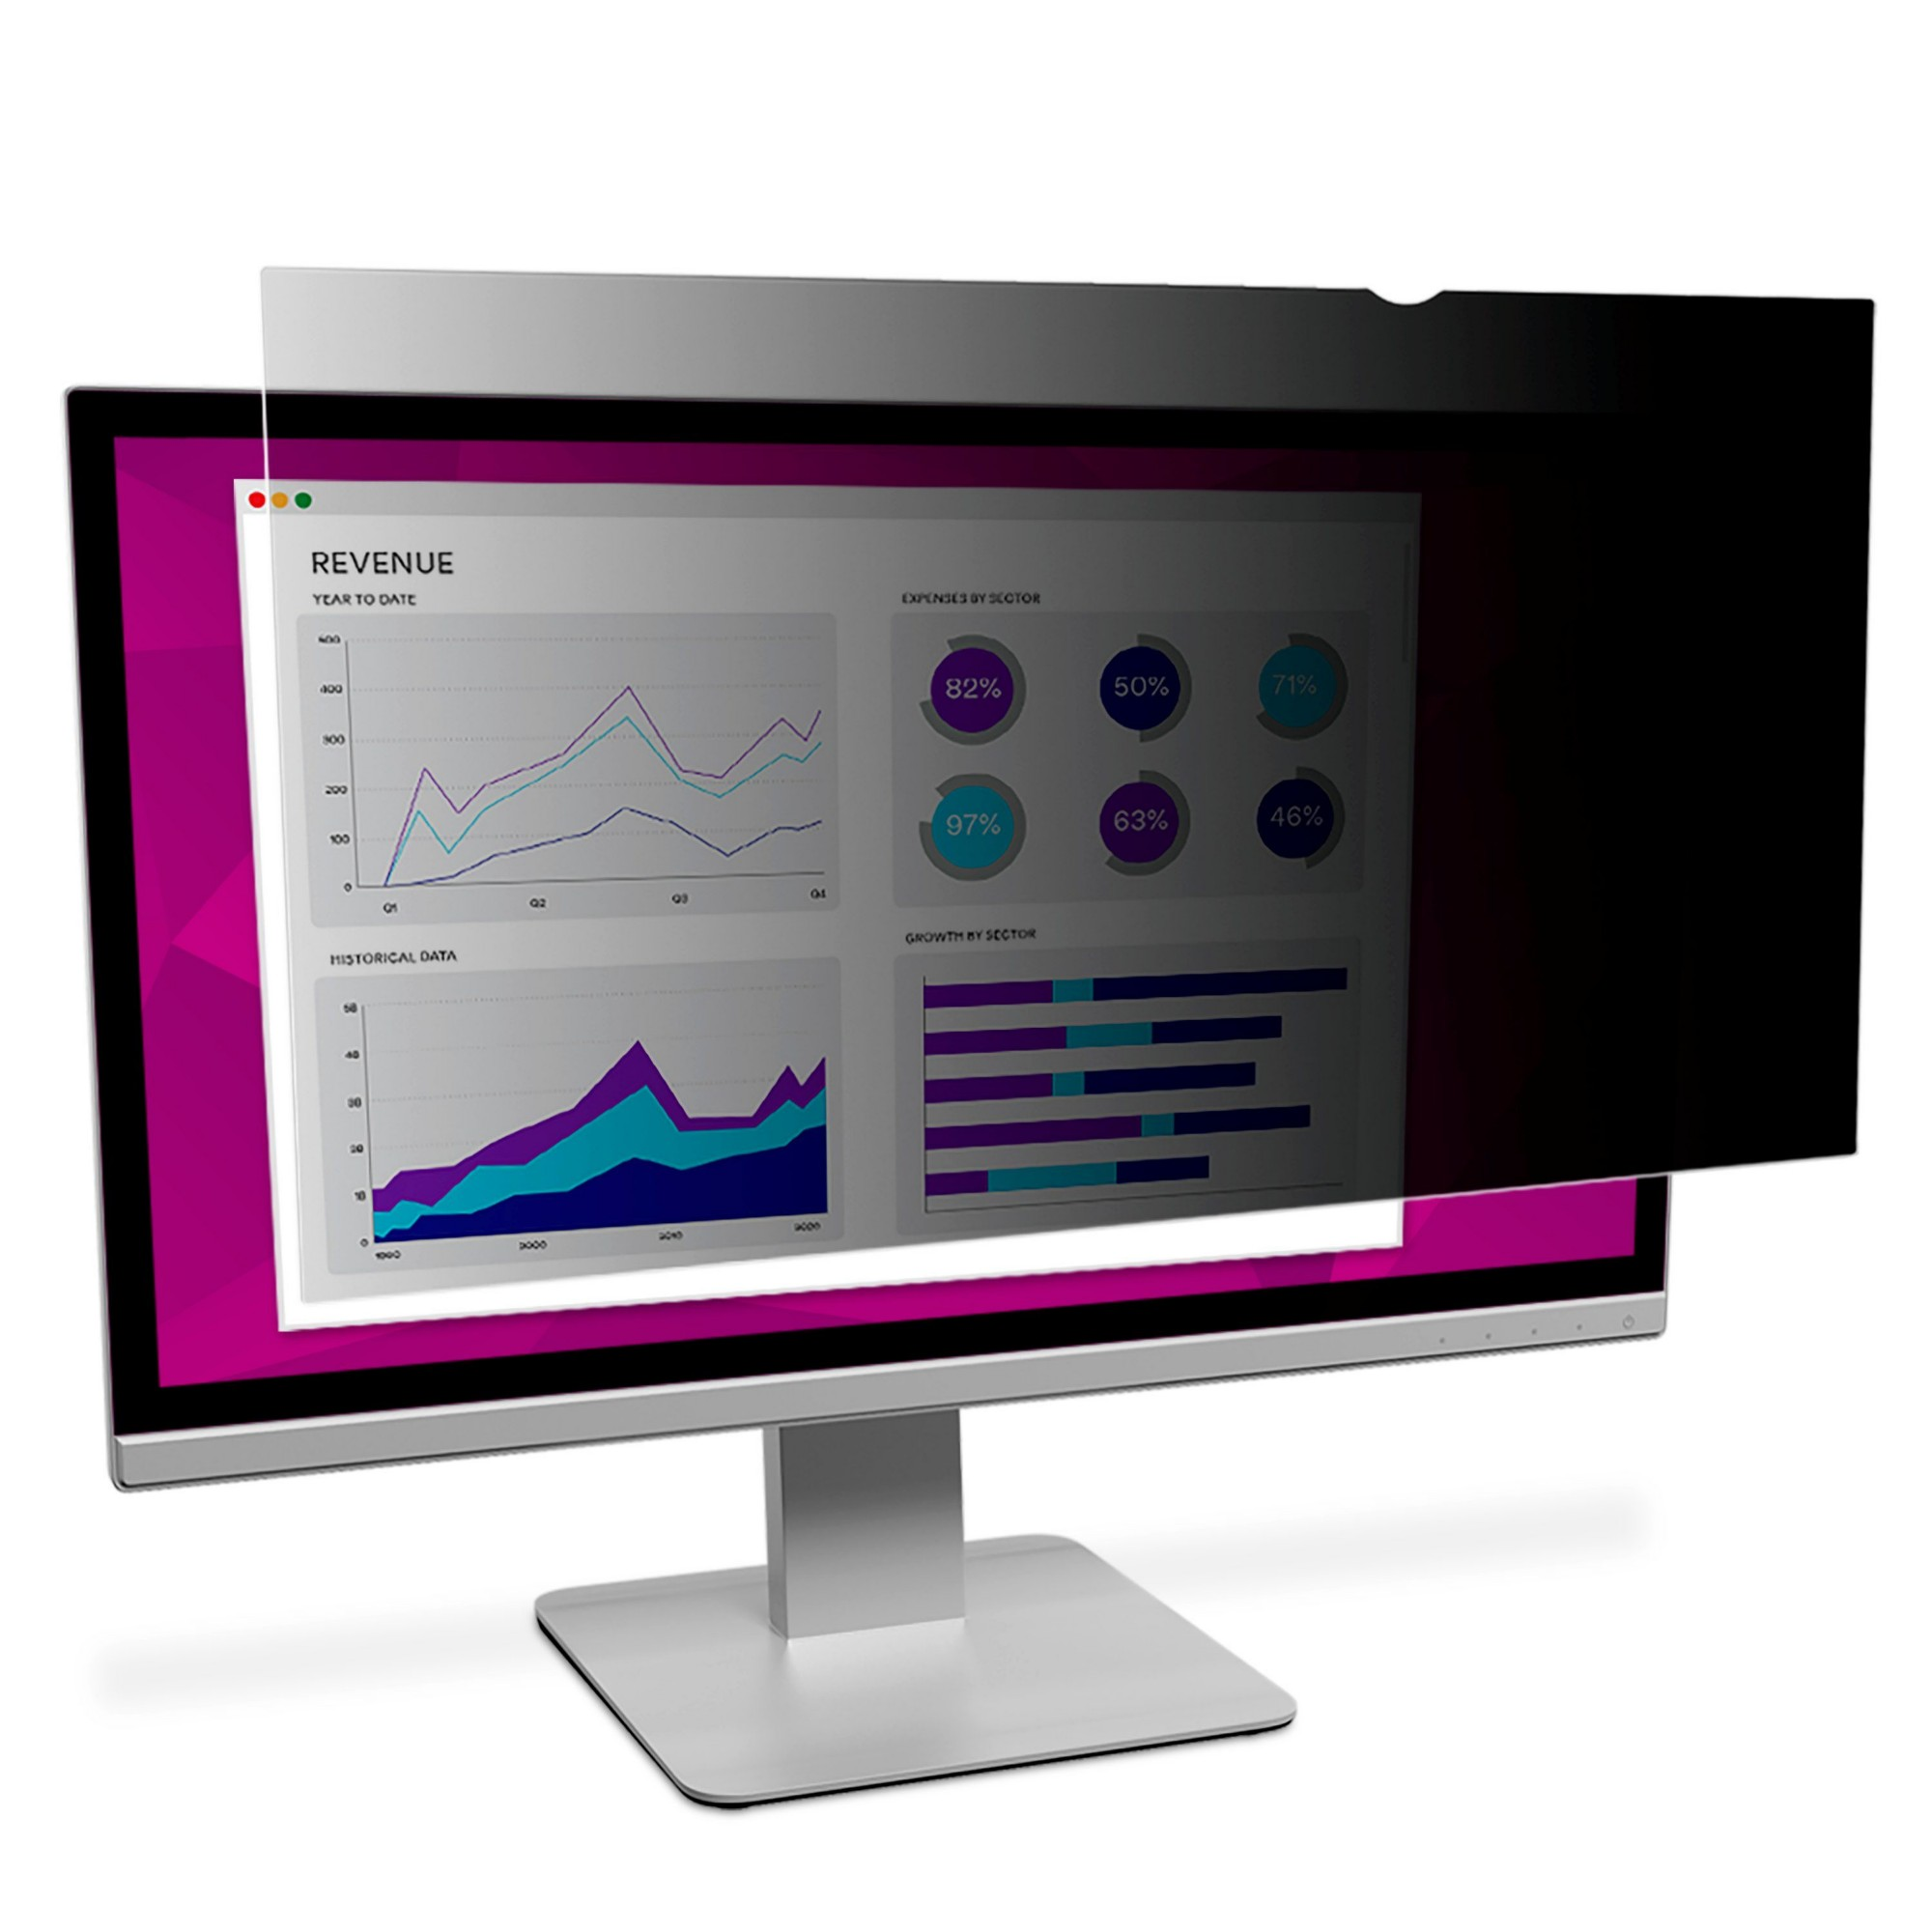 """3M High Clarity Privacy Filter for 27"""" Widescreen Monitor"""